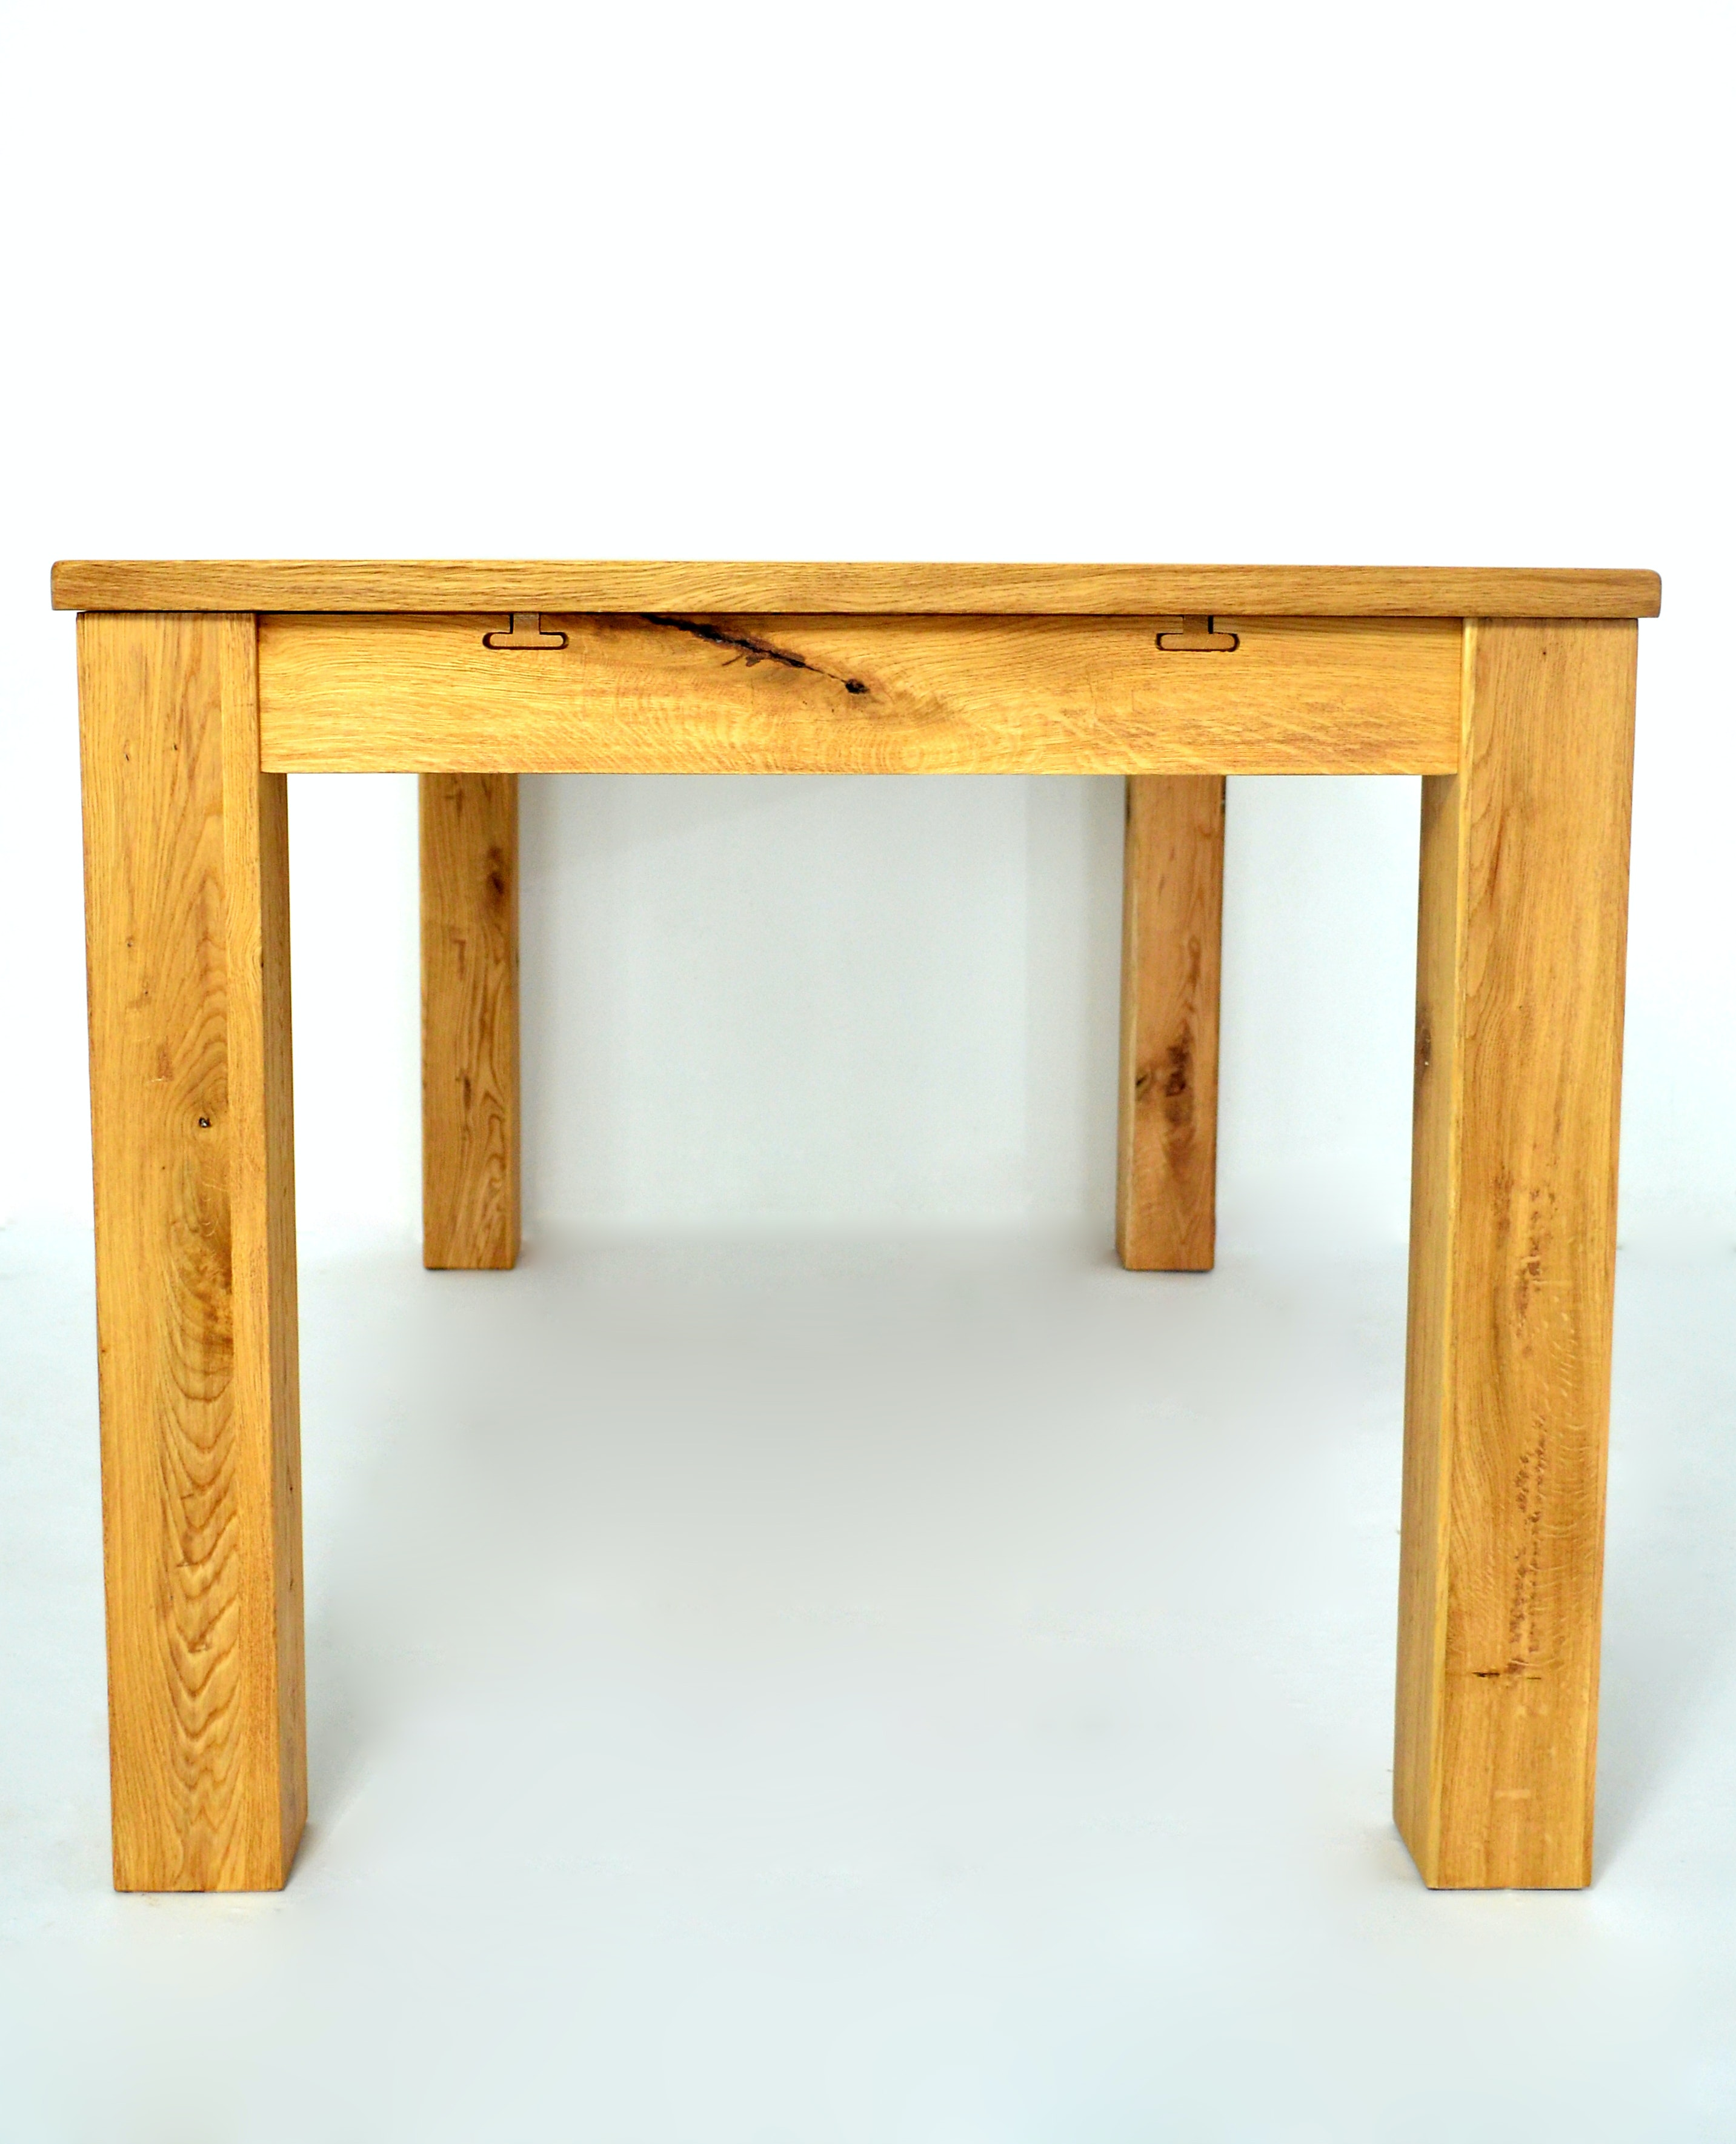 FREE STOCK PHOTO OF EXTENDABLE TABLE MADE IN SOLID OAK